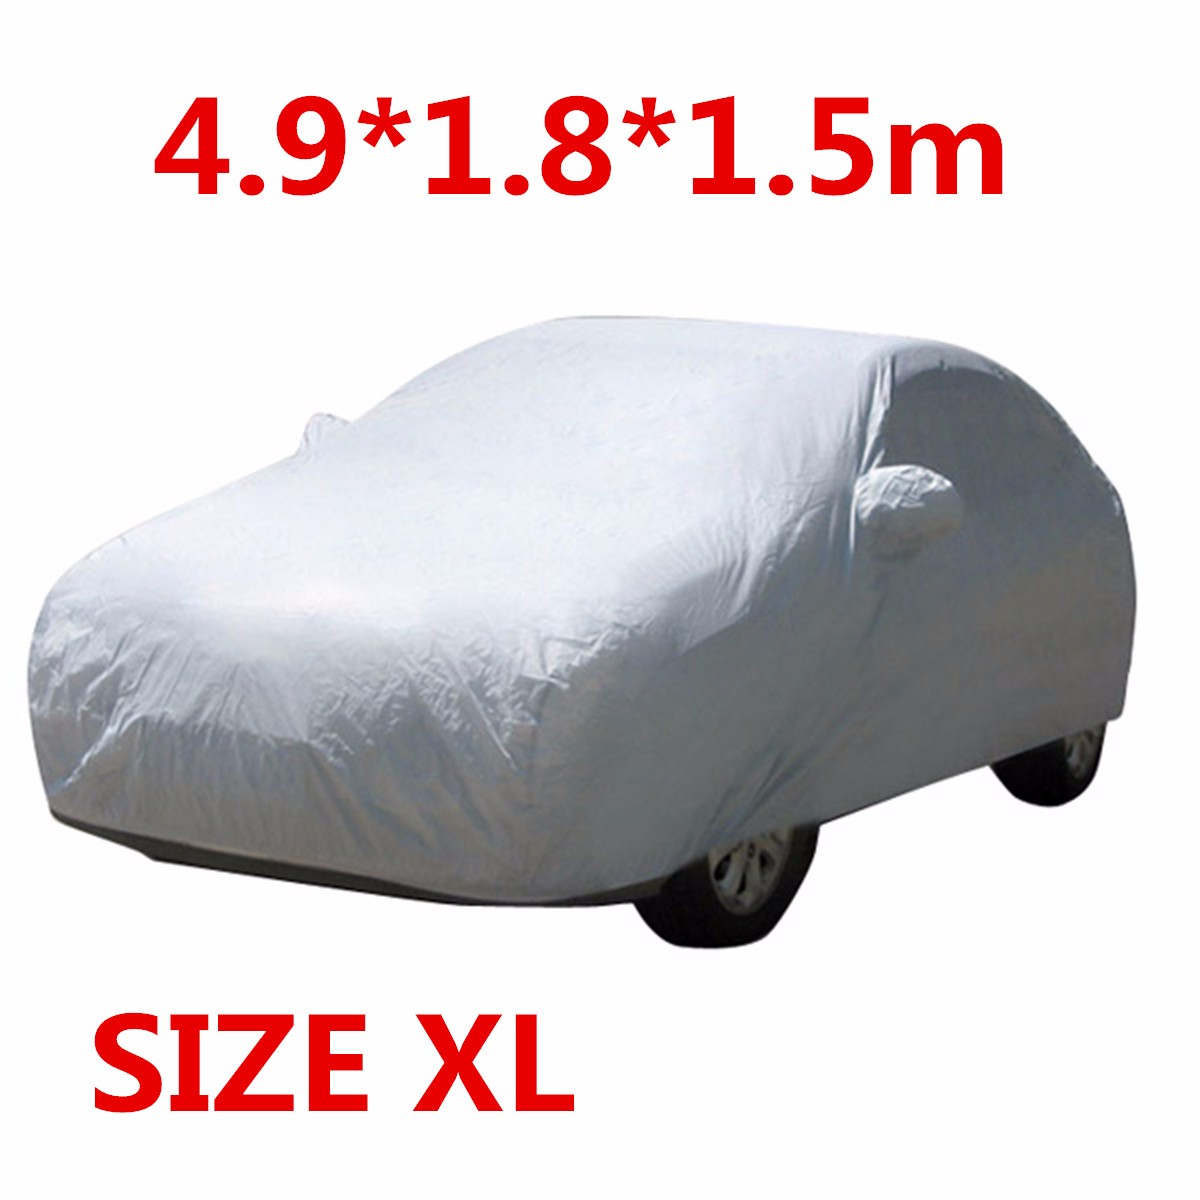 MAZDA RX-8 RX8 03 INDOOR OUTDOOR FULLY WATERPROOF CAR COVER COTTON LINED HEAVY